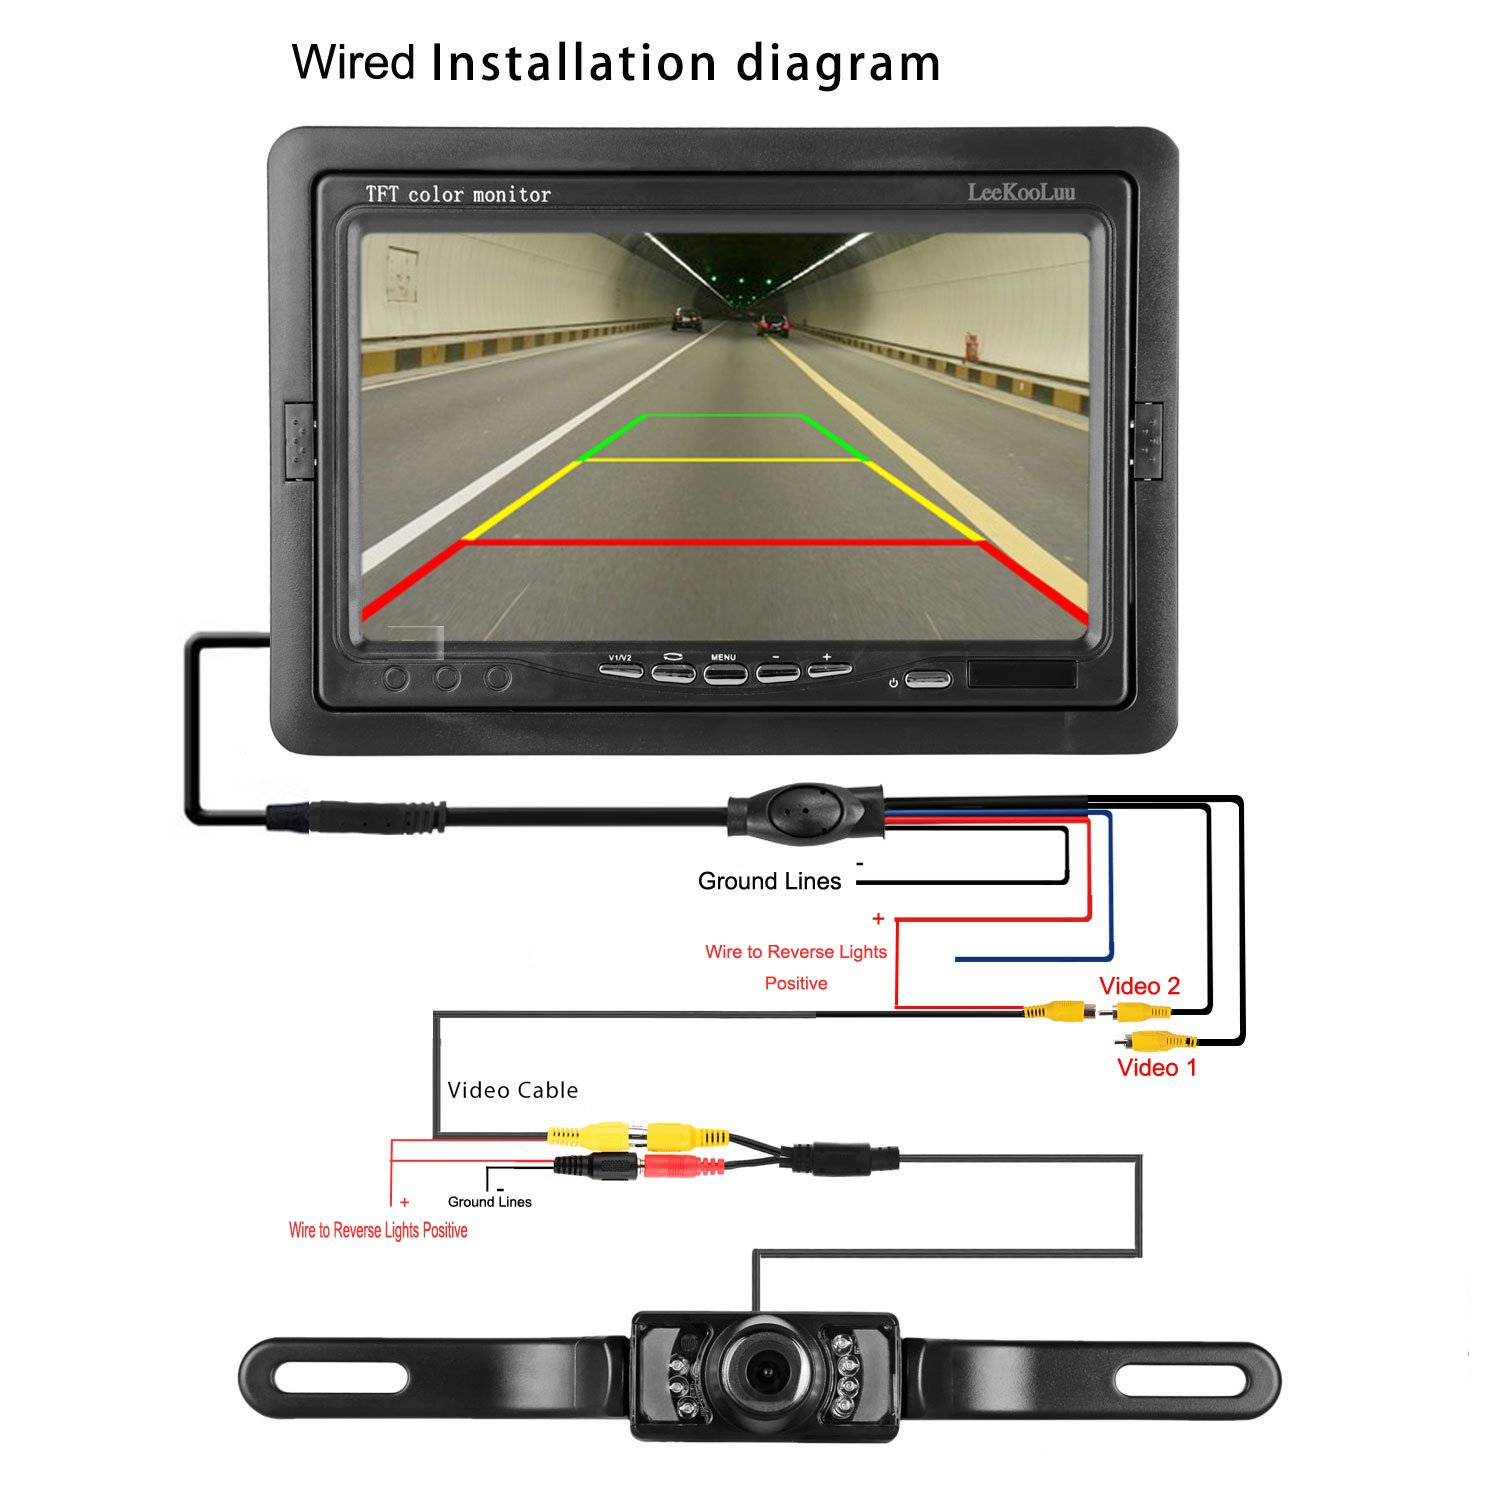 Tft Backup Camera Wiring Diagram - Trusted Wiring Diagrams •